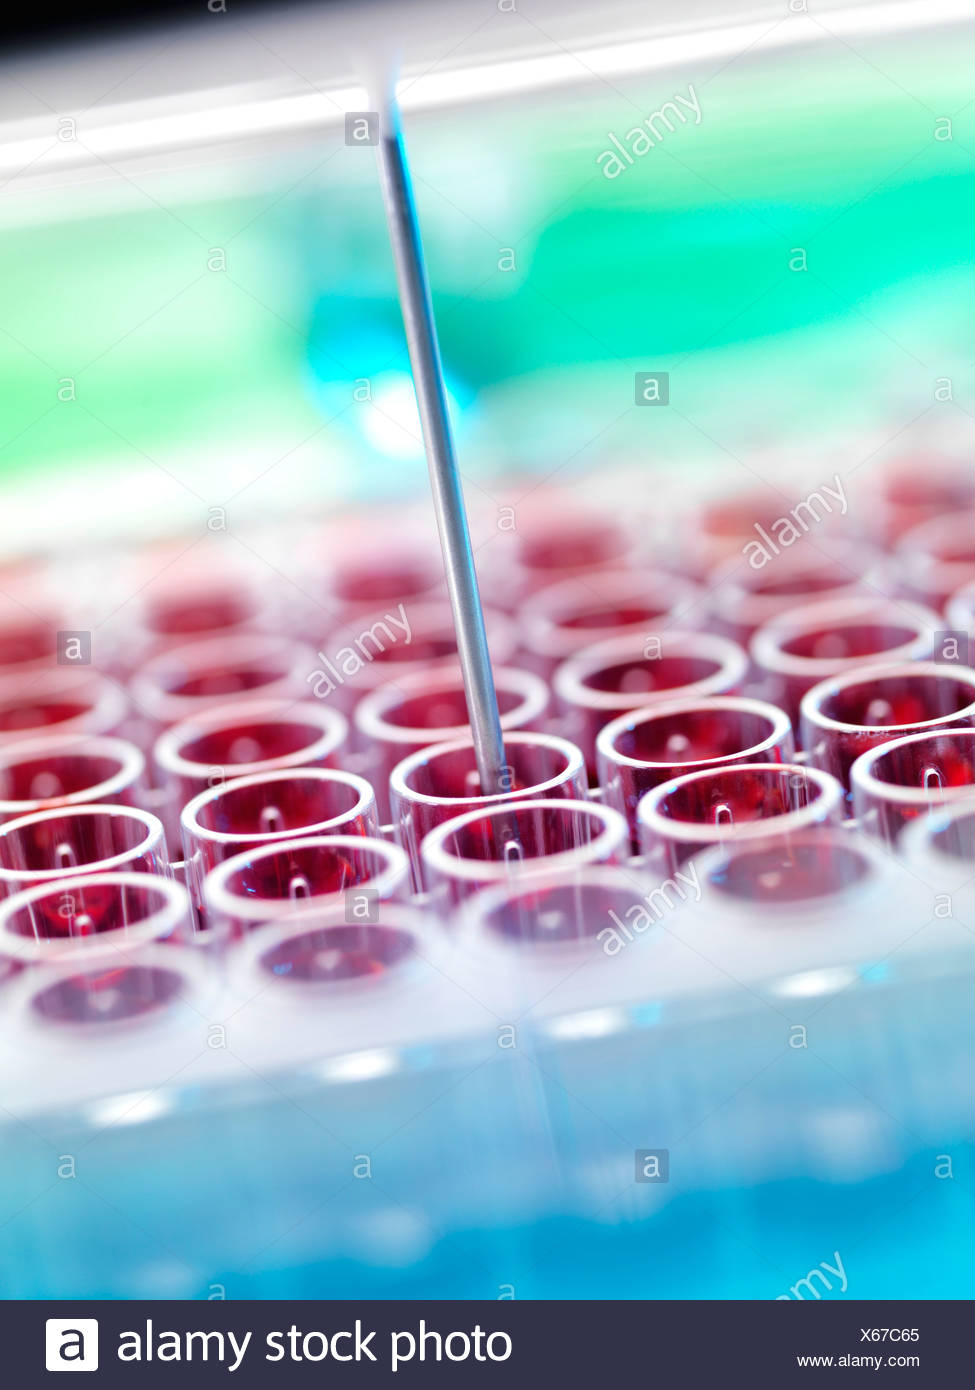 Automated blood screening - Stock Image